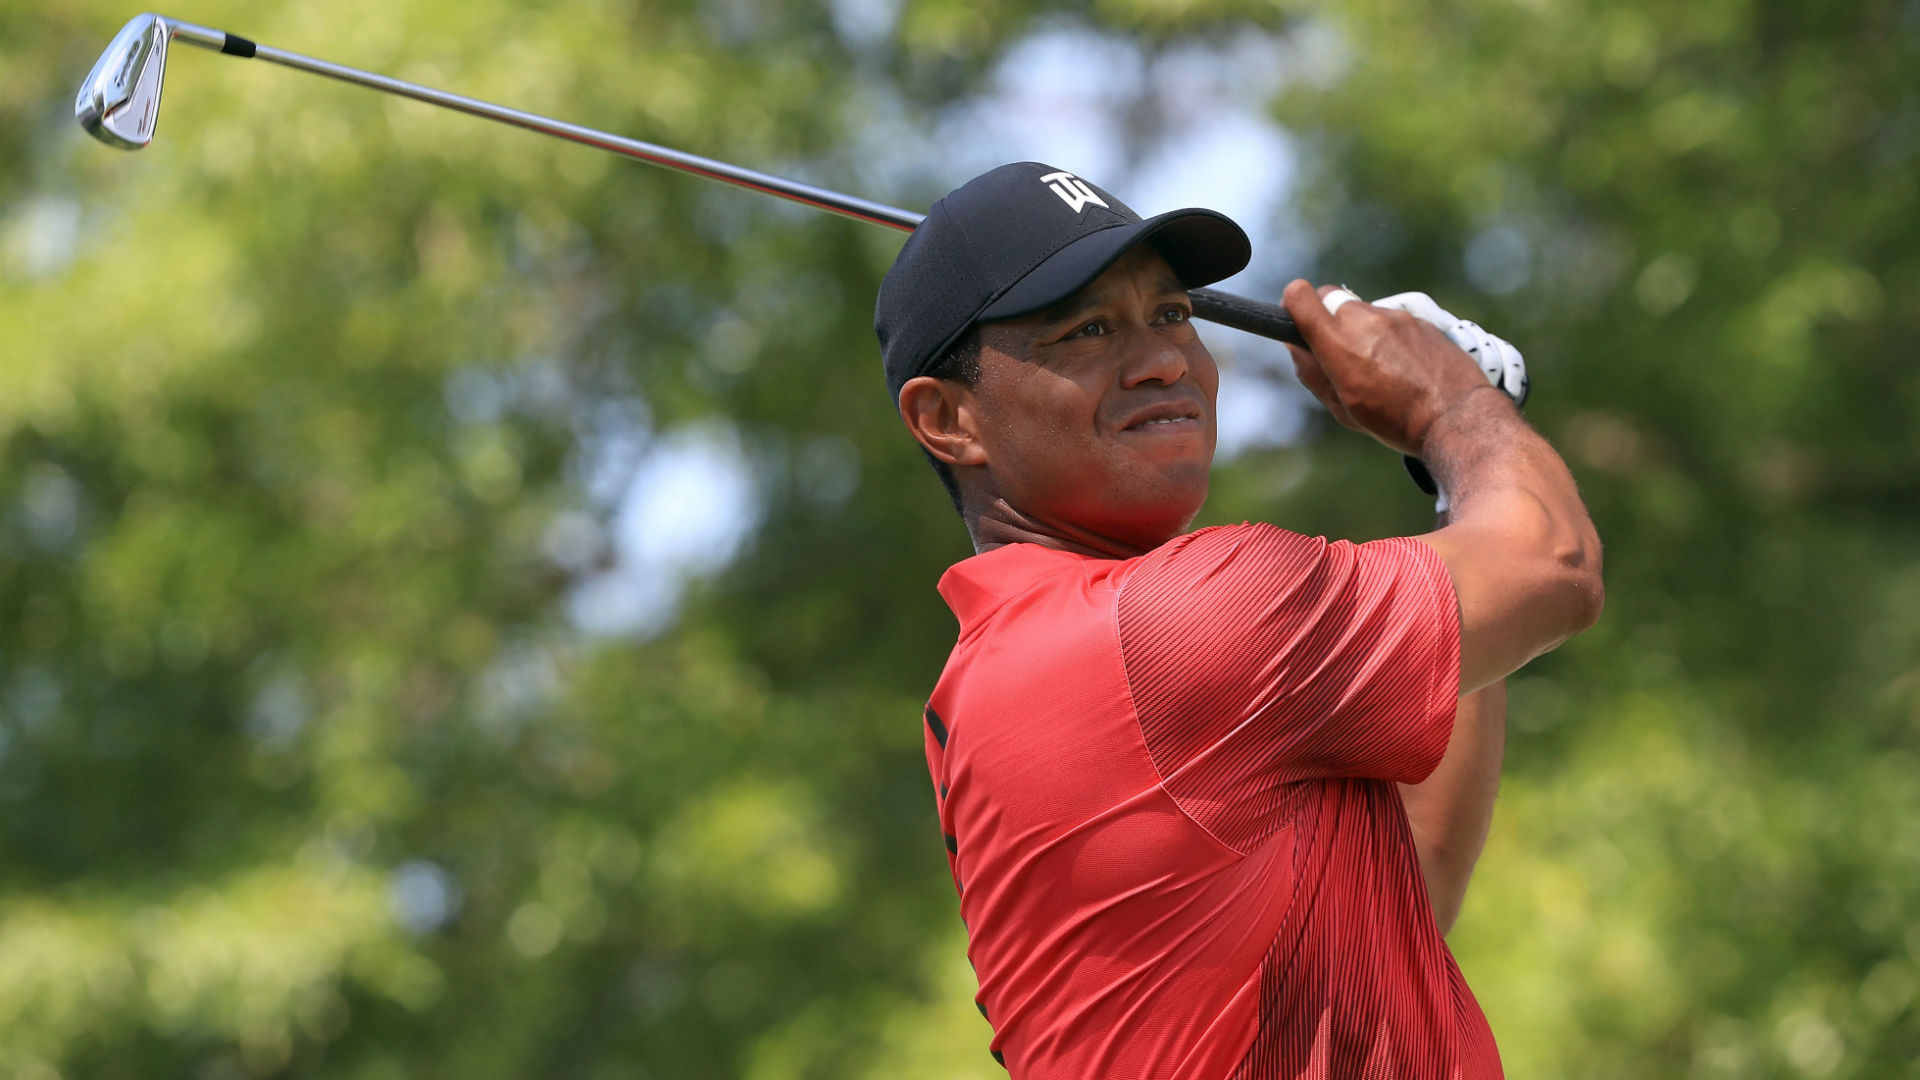 Tiger Woods score: Live updates from final round of Quicken Loans National